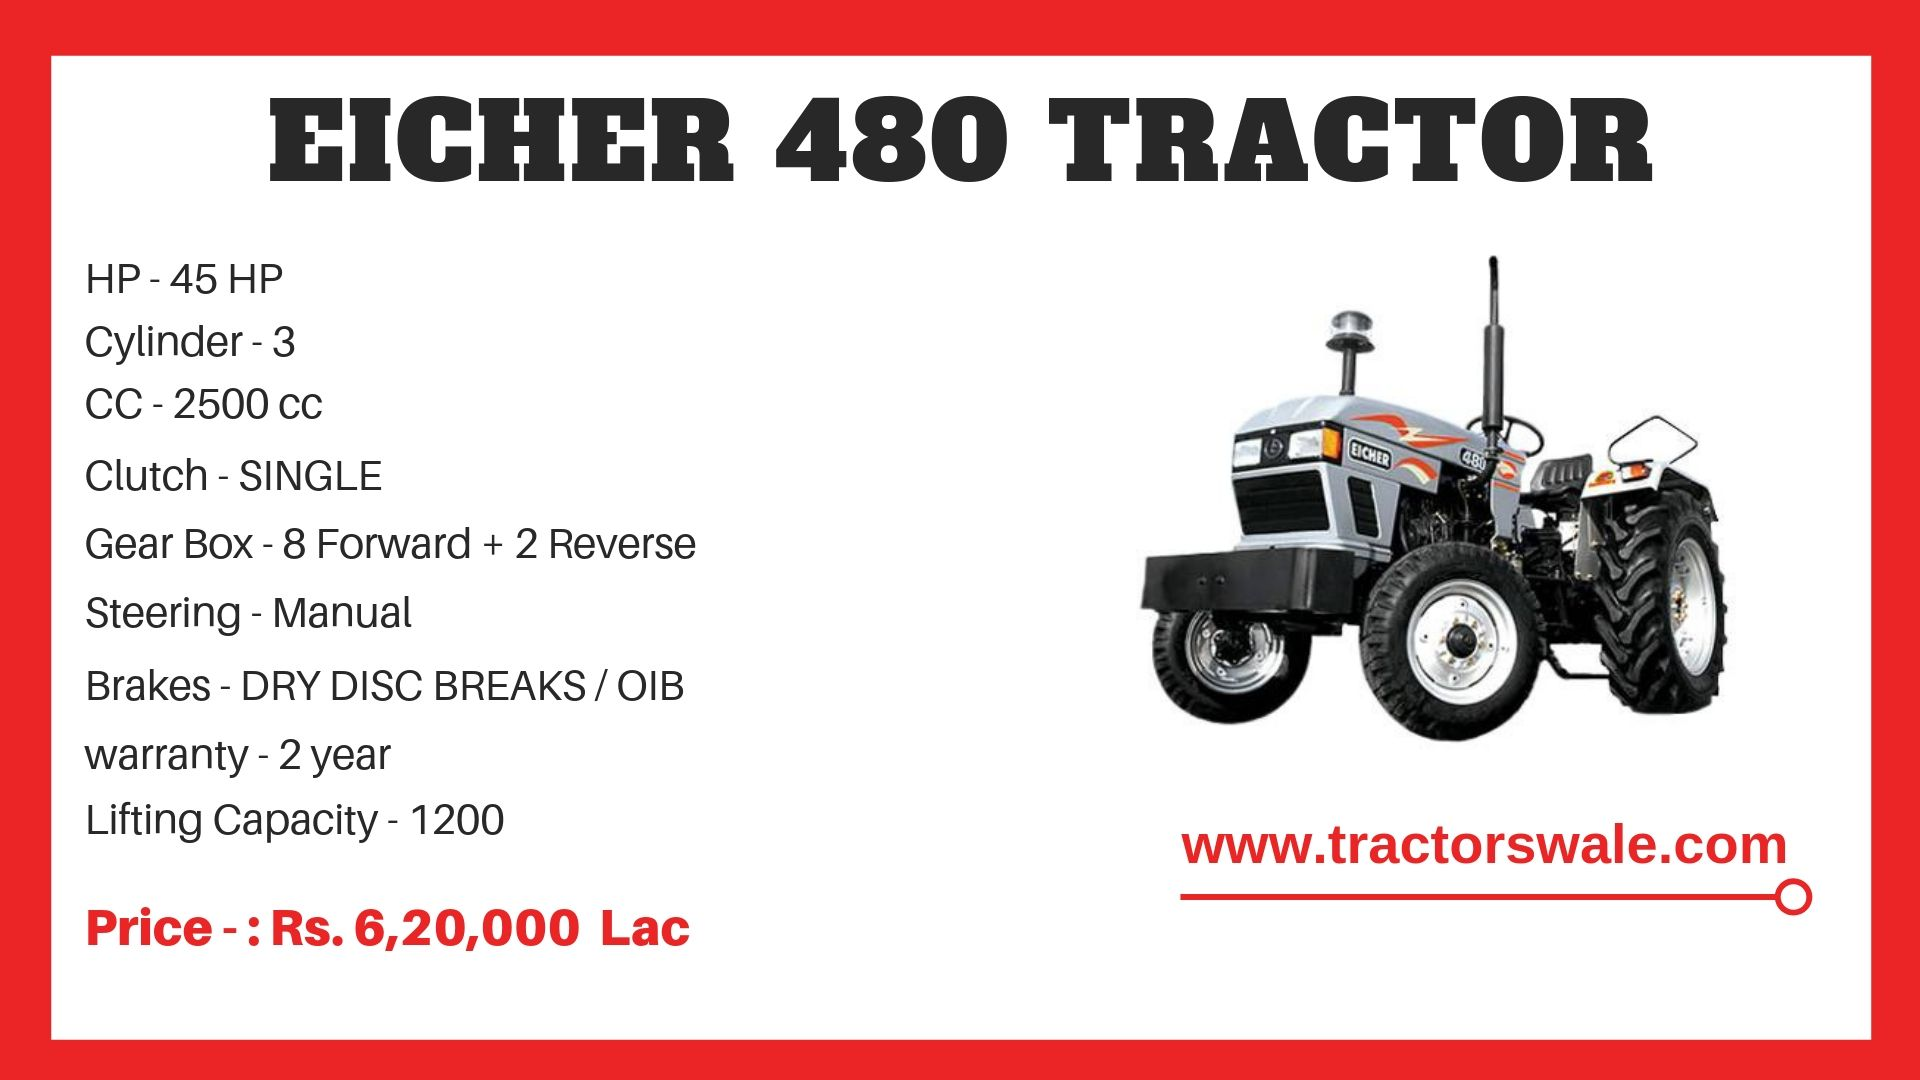 Eicher Tractor 480 Specifications